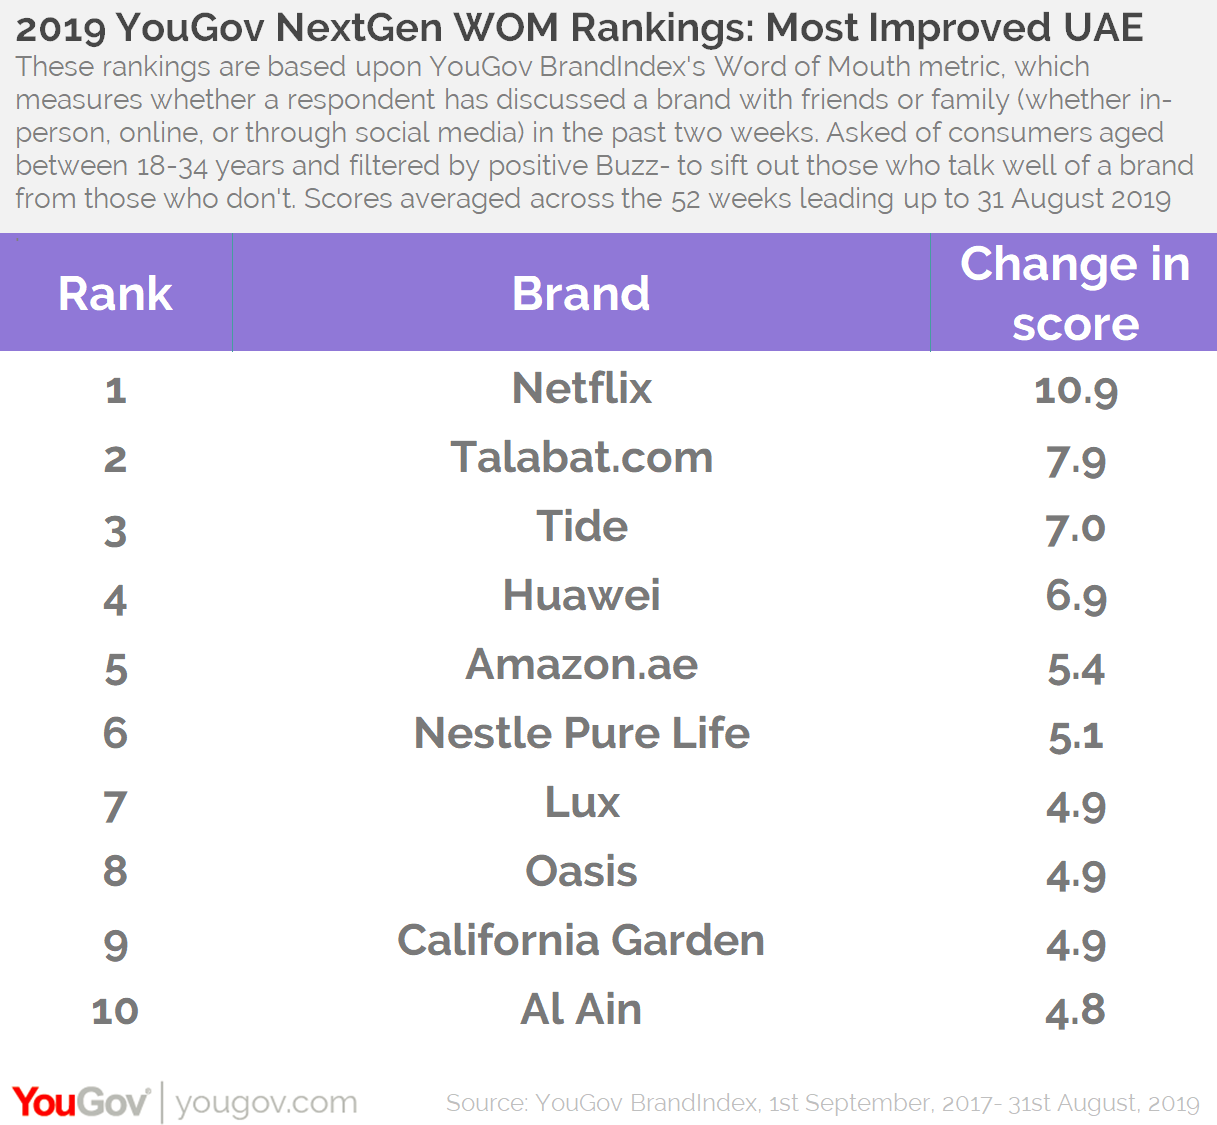 2019 WOM Rankings- Top improvers UAE